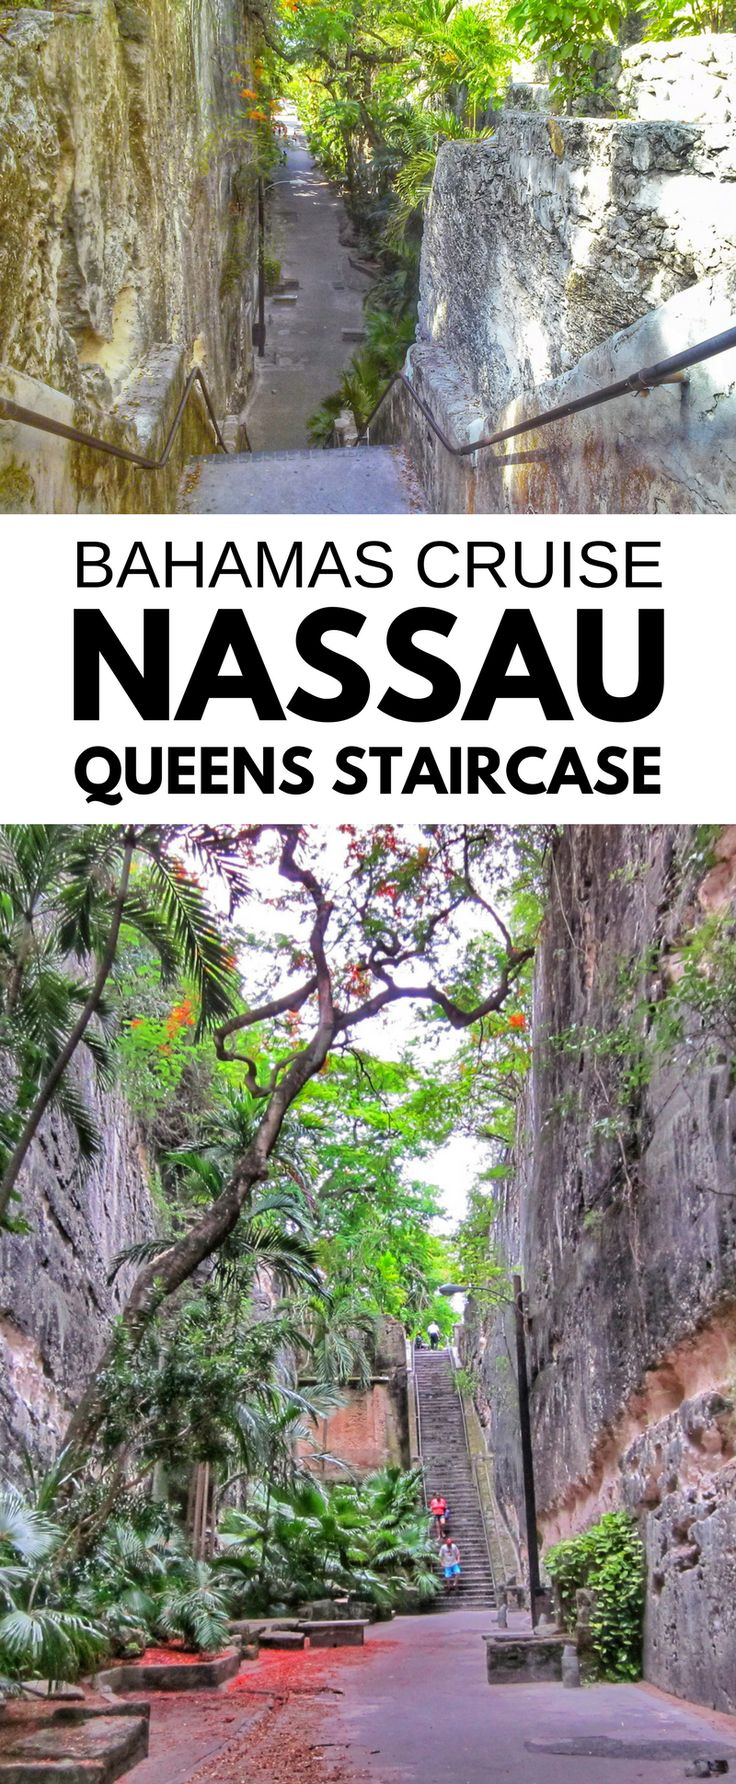 Queens Staircase: Free things to do in Nassau Bahamas. For self-guided excursions in Nassau on Bahamas vacation, cruise tips and ideas near Nassau cruise port! Alternative to Atlantis resort and Paradise Island beach trips, activities for budget-friendly Bahamas cruise. Not far from downtown and can get a little shopping in at mini market stands! Map of Nassau with tourist points of interest. For what to pack for Caribbean cruise, ideas for the cruise packing list. #cruise #cruisetips…